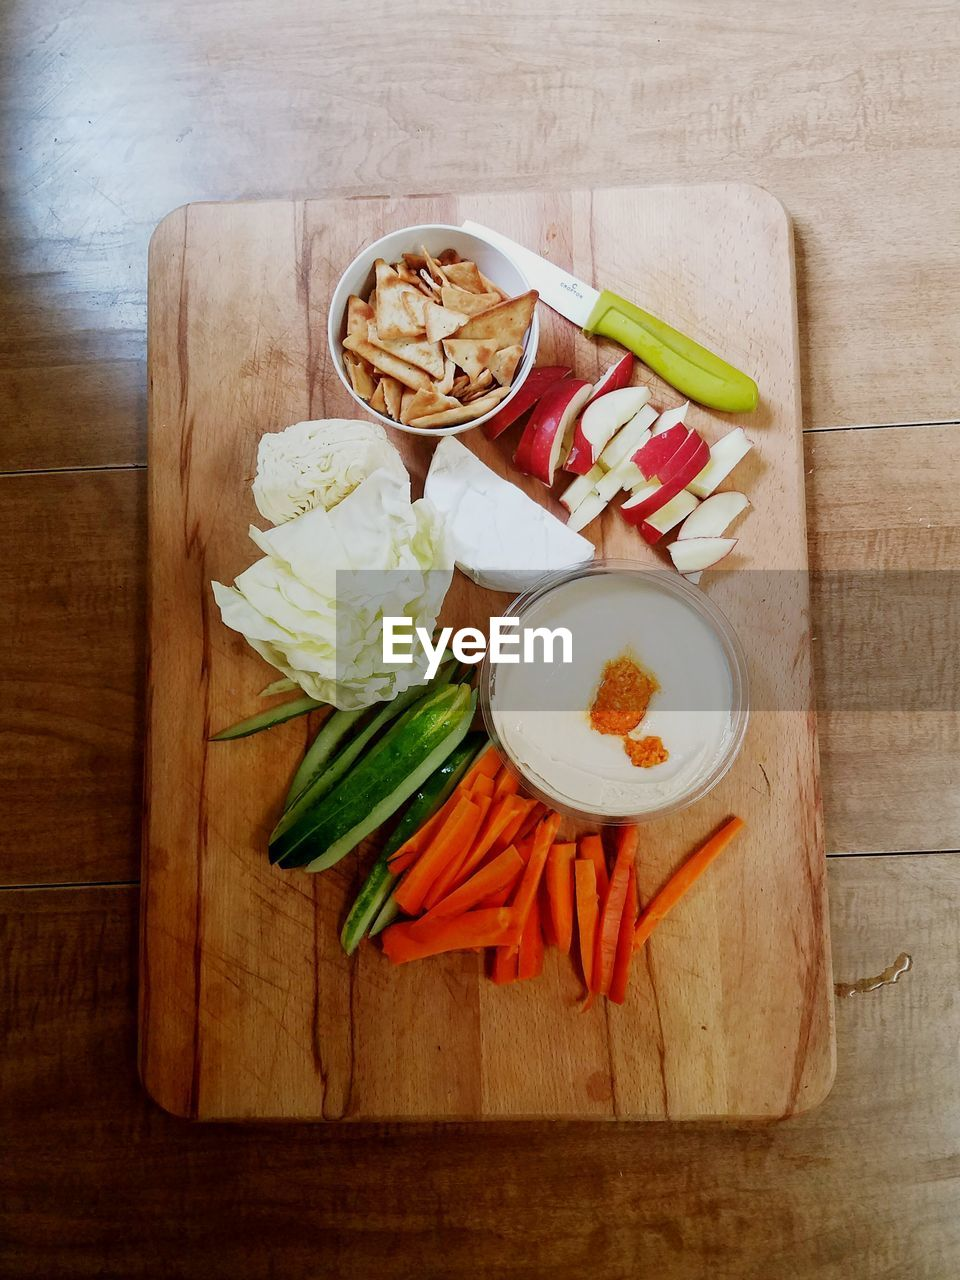 freshness, food and drink, high angle view, cutting board, still life, food, wood - material, indoors, directly above, table, no people, vegetable, healthy eating, ready-to-eat, dip, day